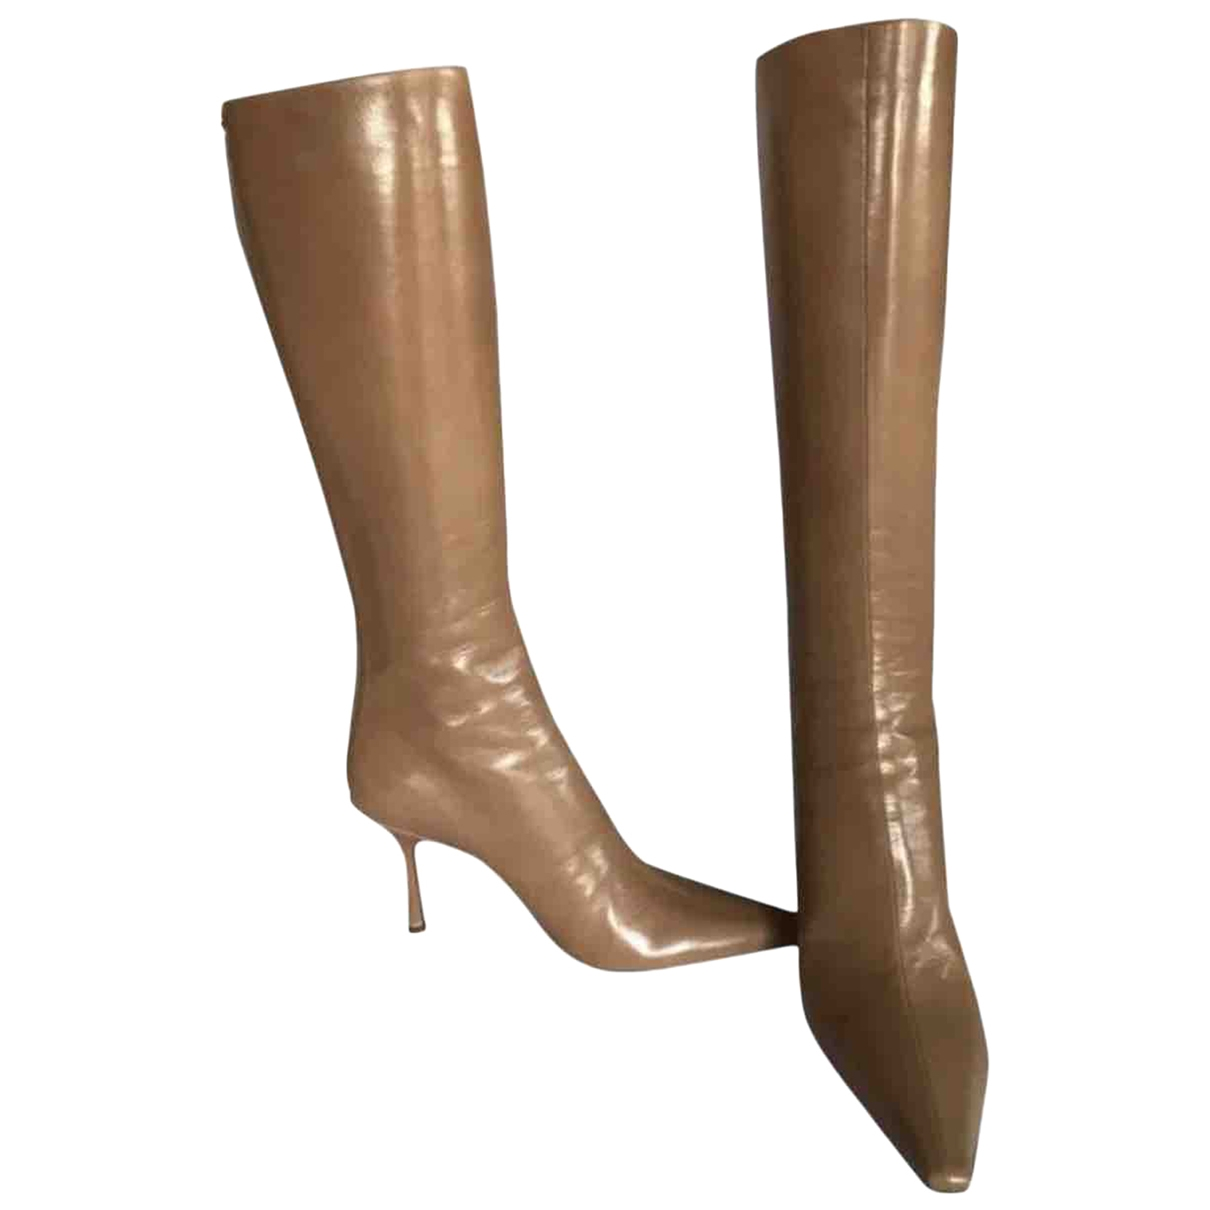 Jimmy Choo \N Beige Patent leather Boots for Women 37.5 EU